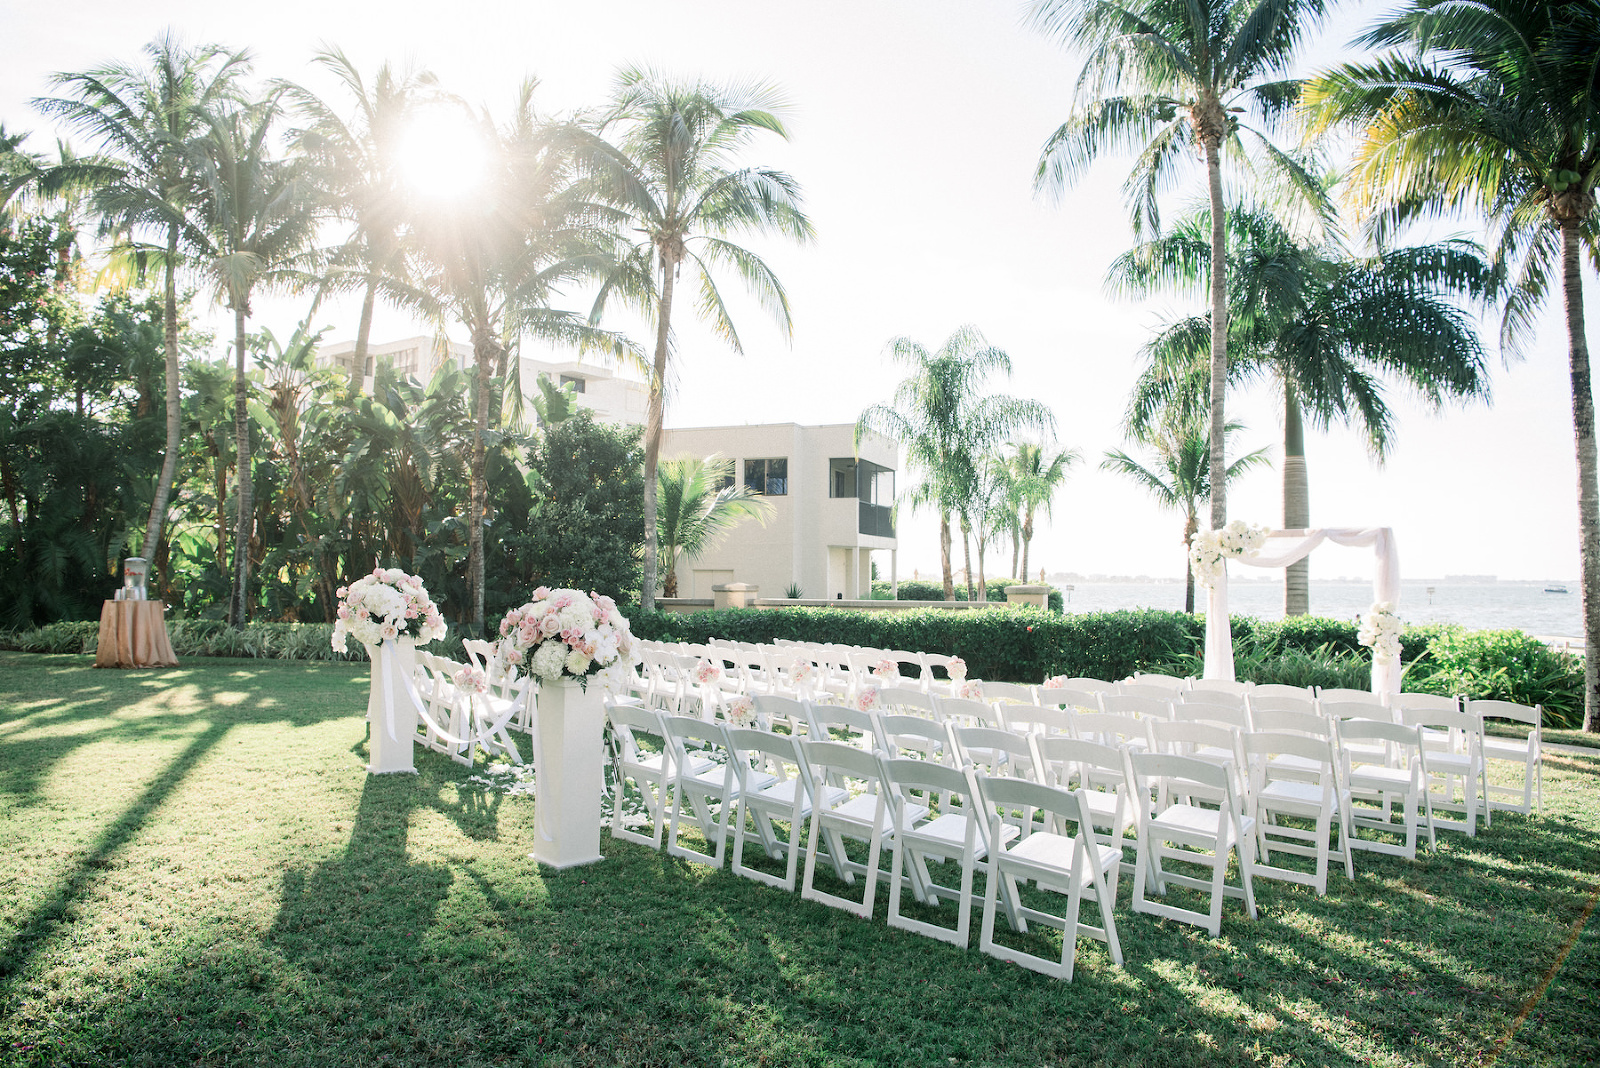 Classic Elegant Waterfront Garden Wedding Ceremony Decor, White Folding Chairs, Pedestals with Floral Arrangements, Rectangular Arch with Draping | Hotel Wedding Venue Ritz Carlton Sarasota | Tampa Wedding Planner Special Moments Event Planning